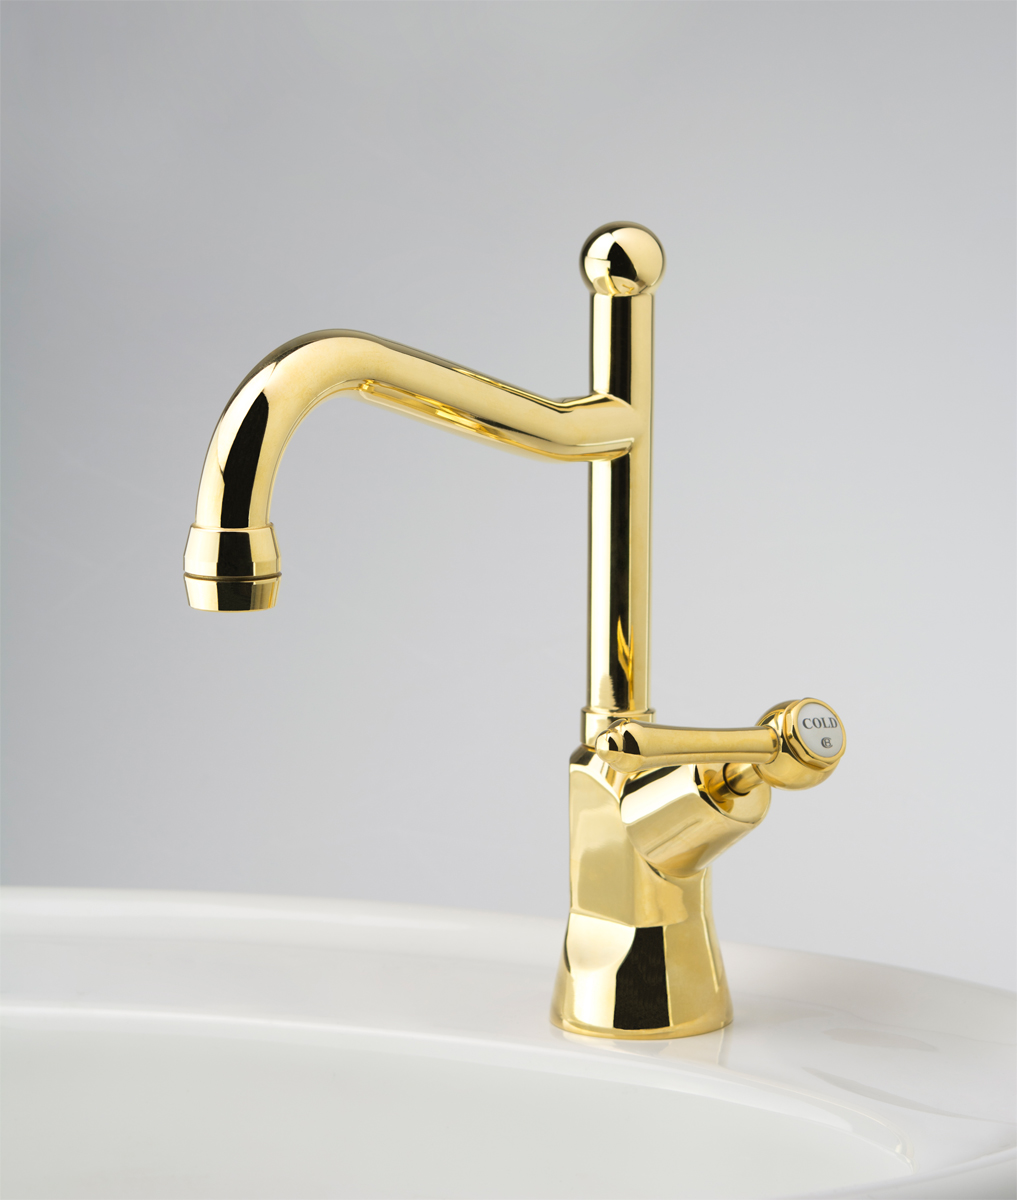 Olde Adelaide Drinking Water Pillar Tap with Swivel Outlet and Roulette Lever Handle in Antique Brass